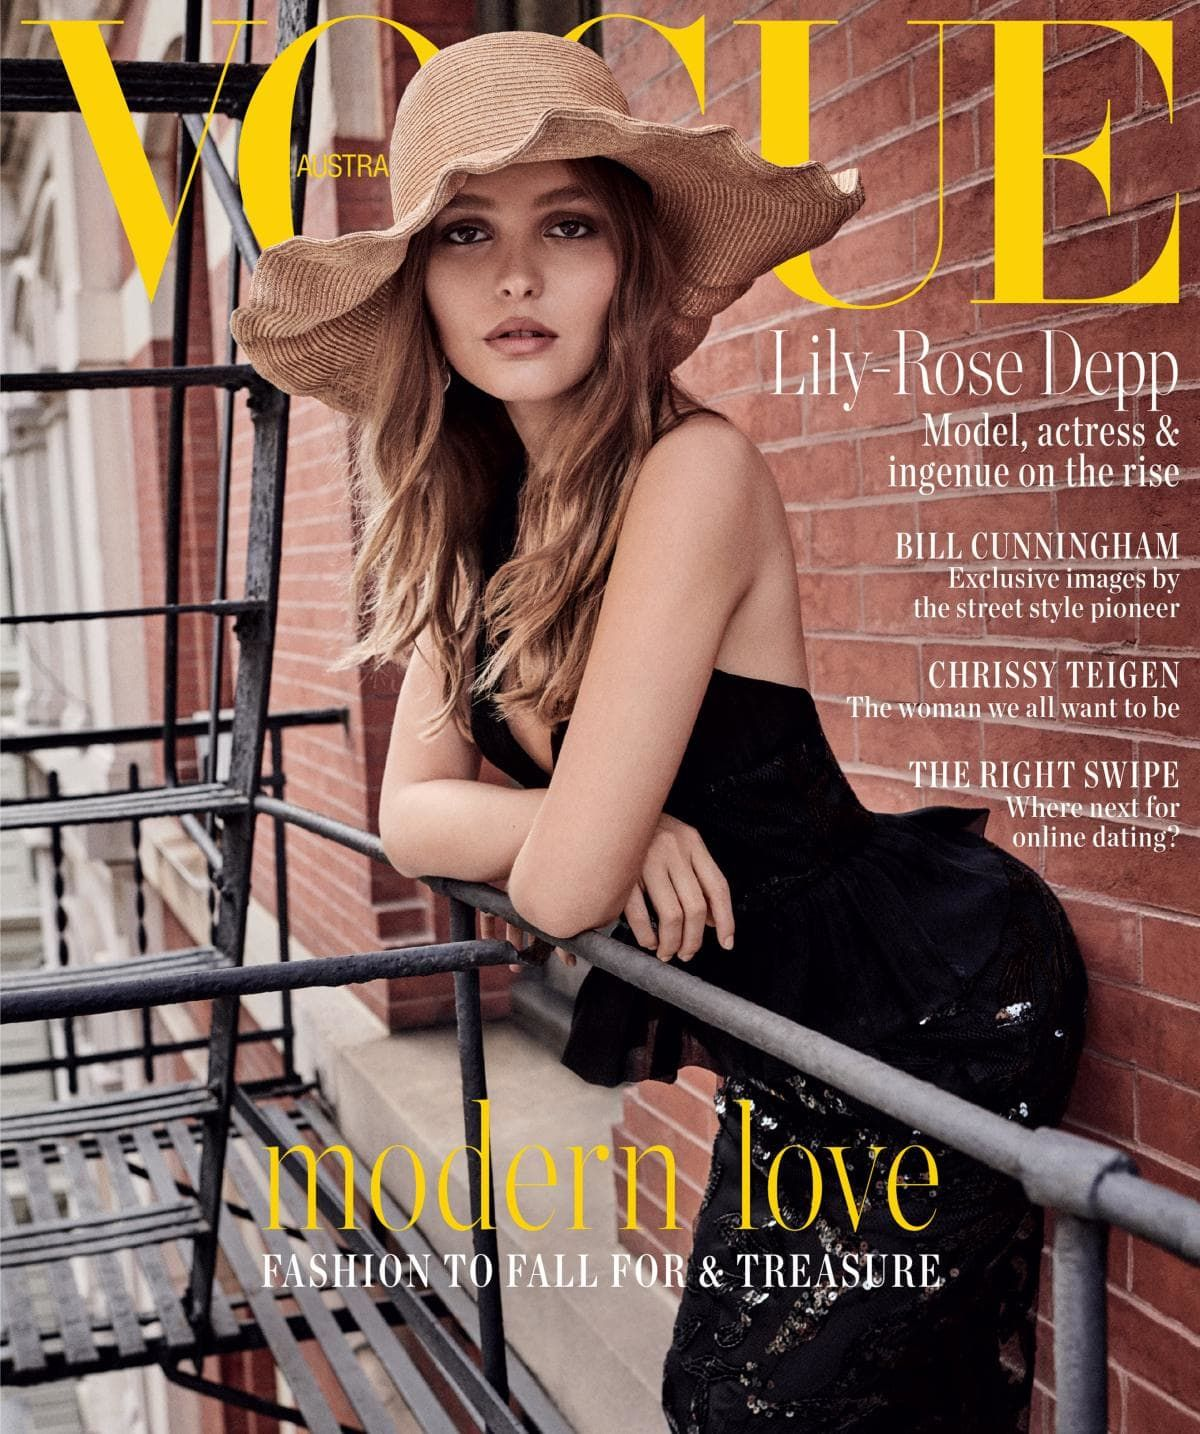 Lily-Rose Depp - Vogue, Australia February 2019 Issue